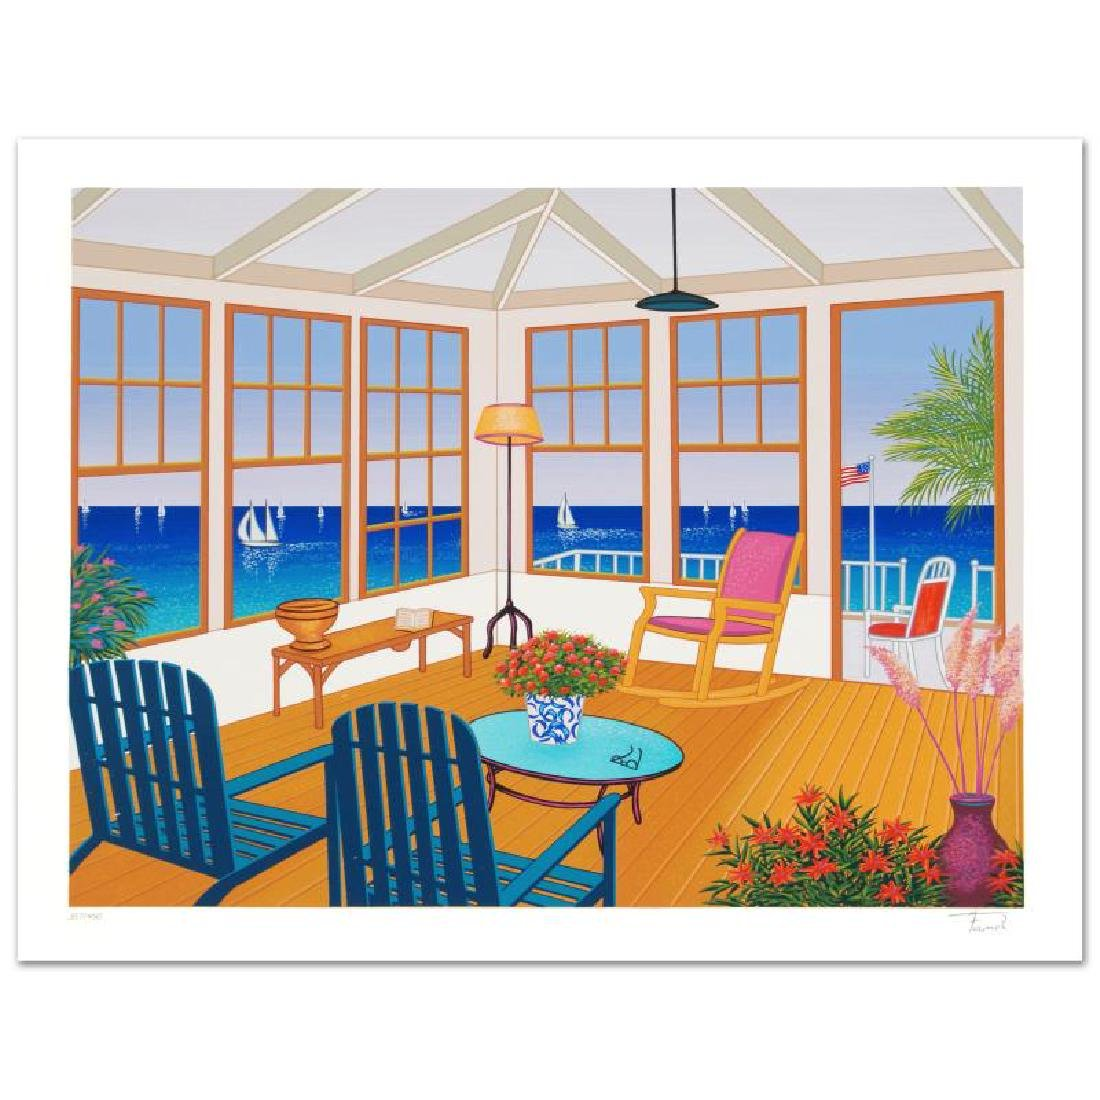 New England Villa Limited Edition Serigraph by Fanch